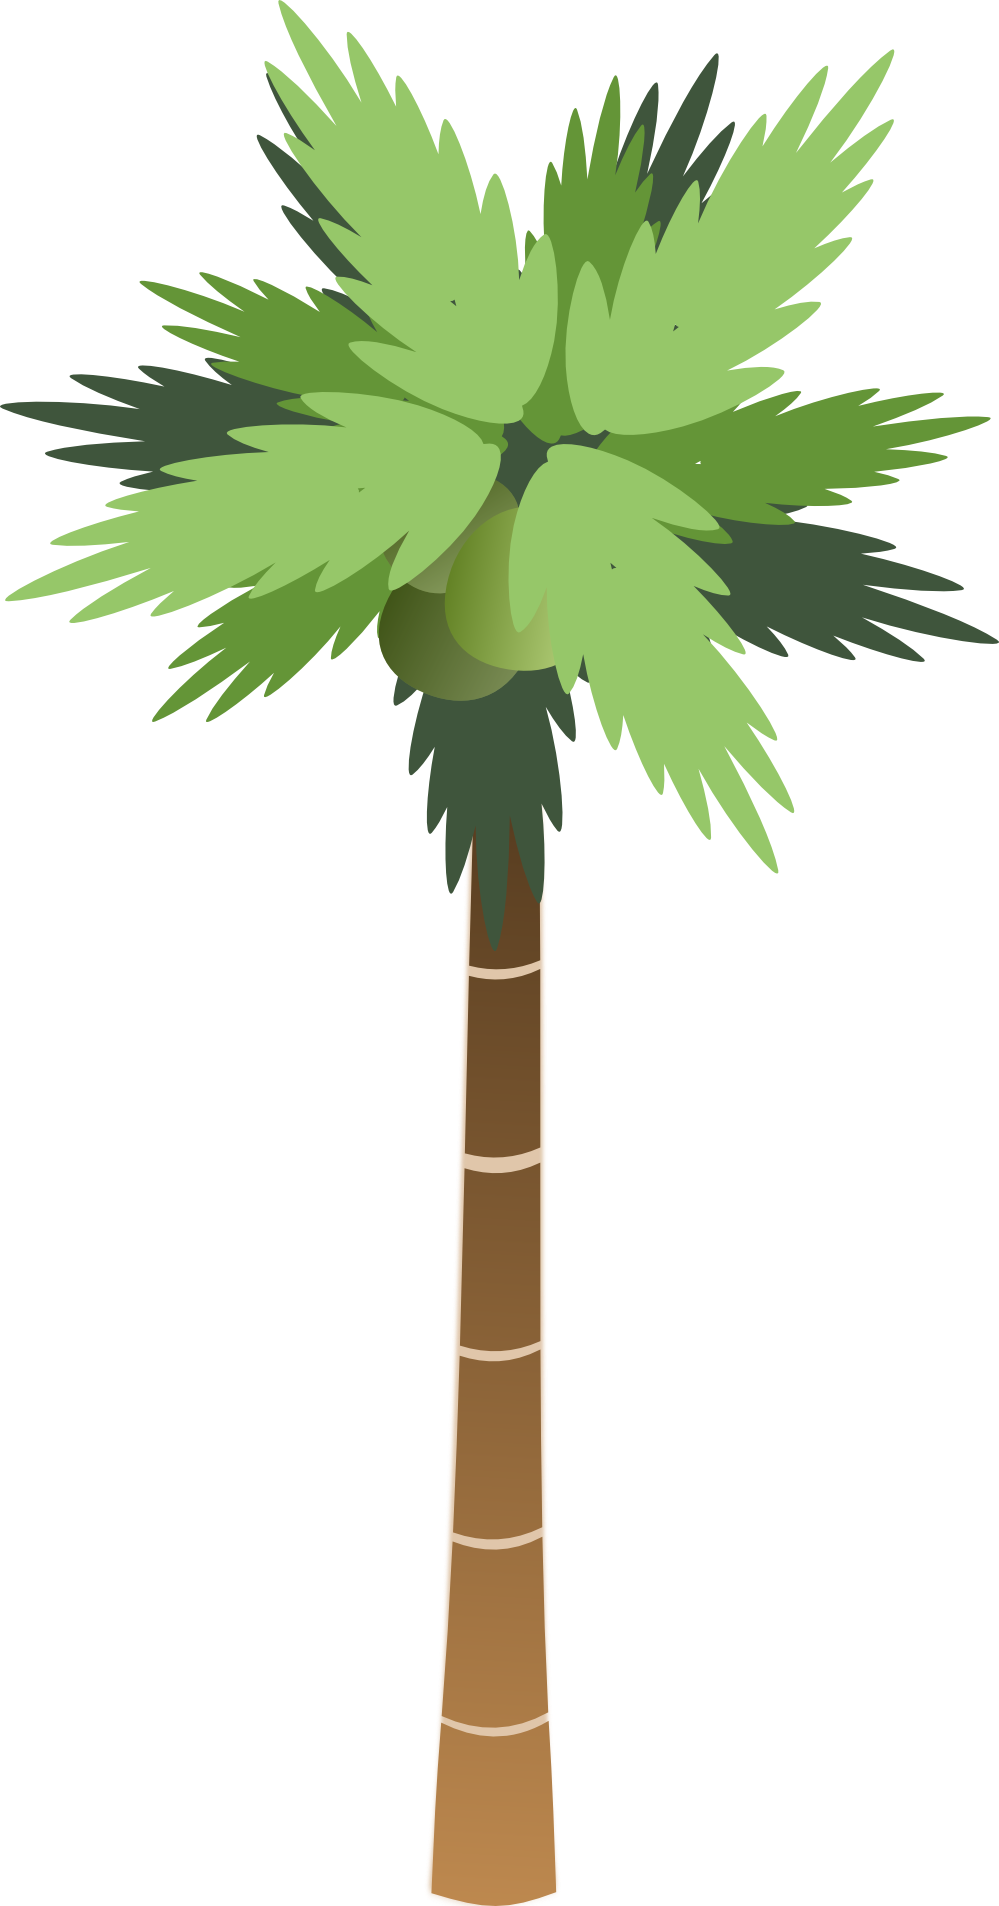 Palm clipart simple. Cartoon tree png image